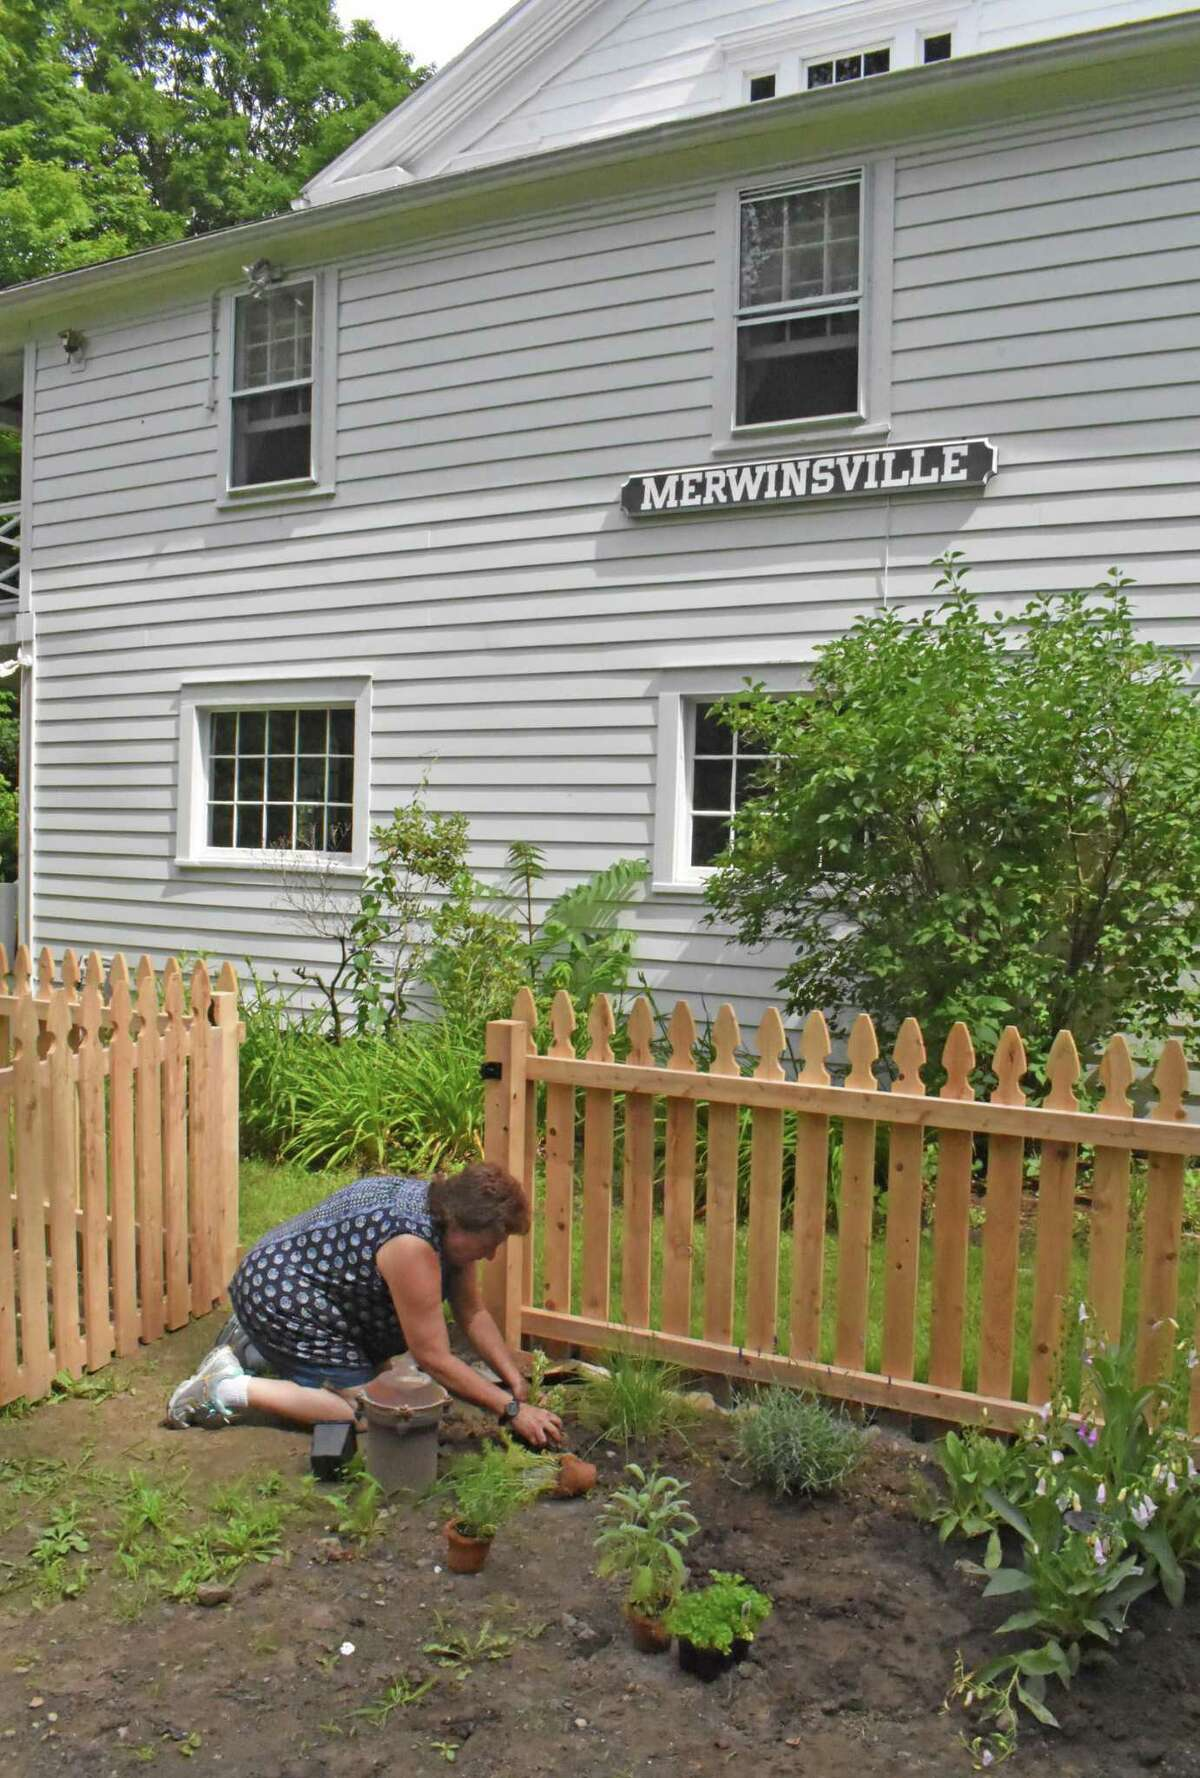 The Merwinsville Hotel in Gaylordsville, where a kitchen garden was installed a couple years ago.